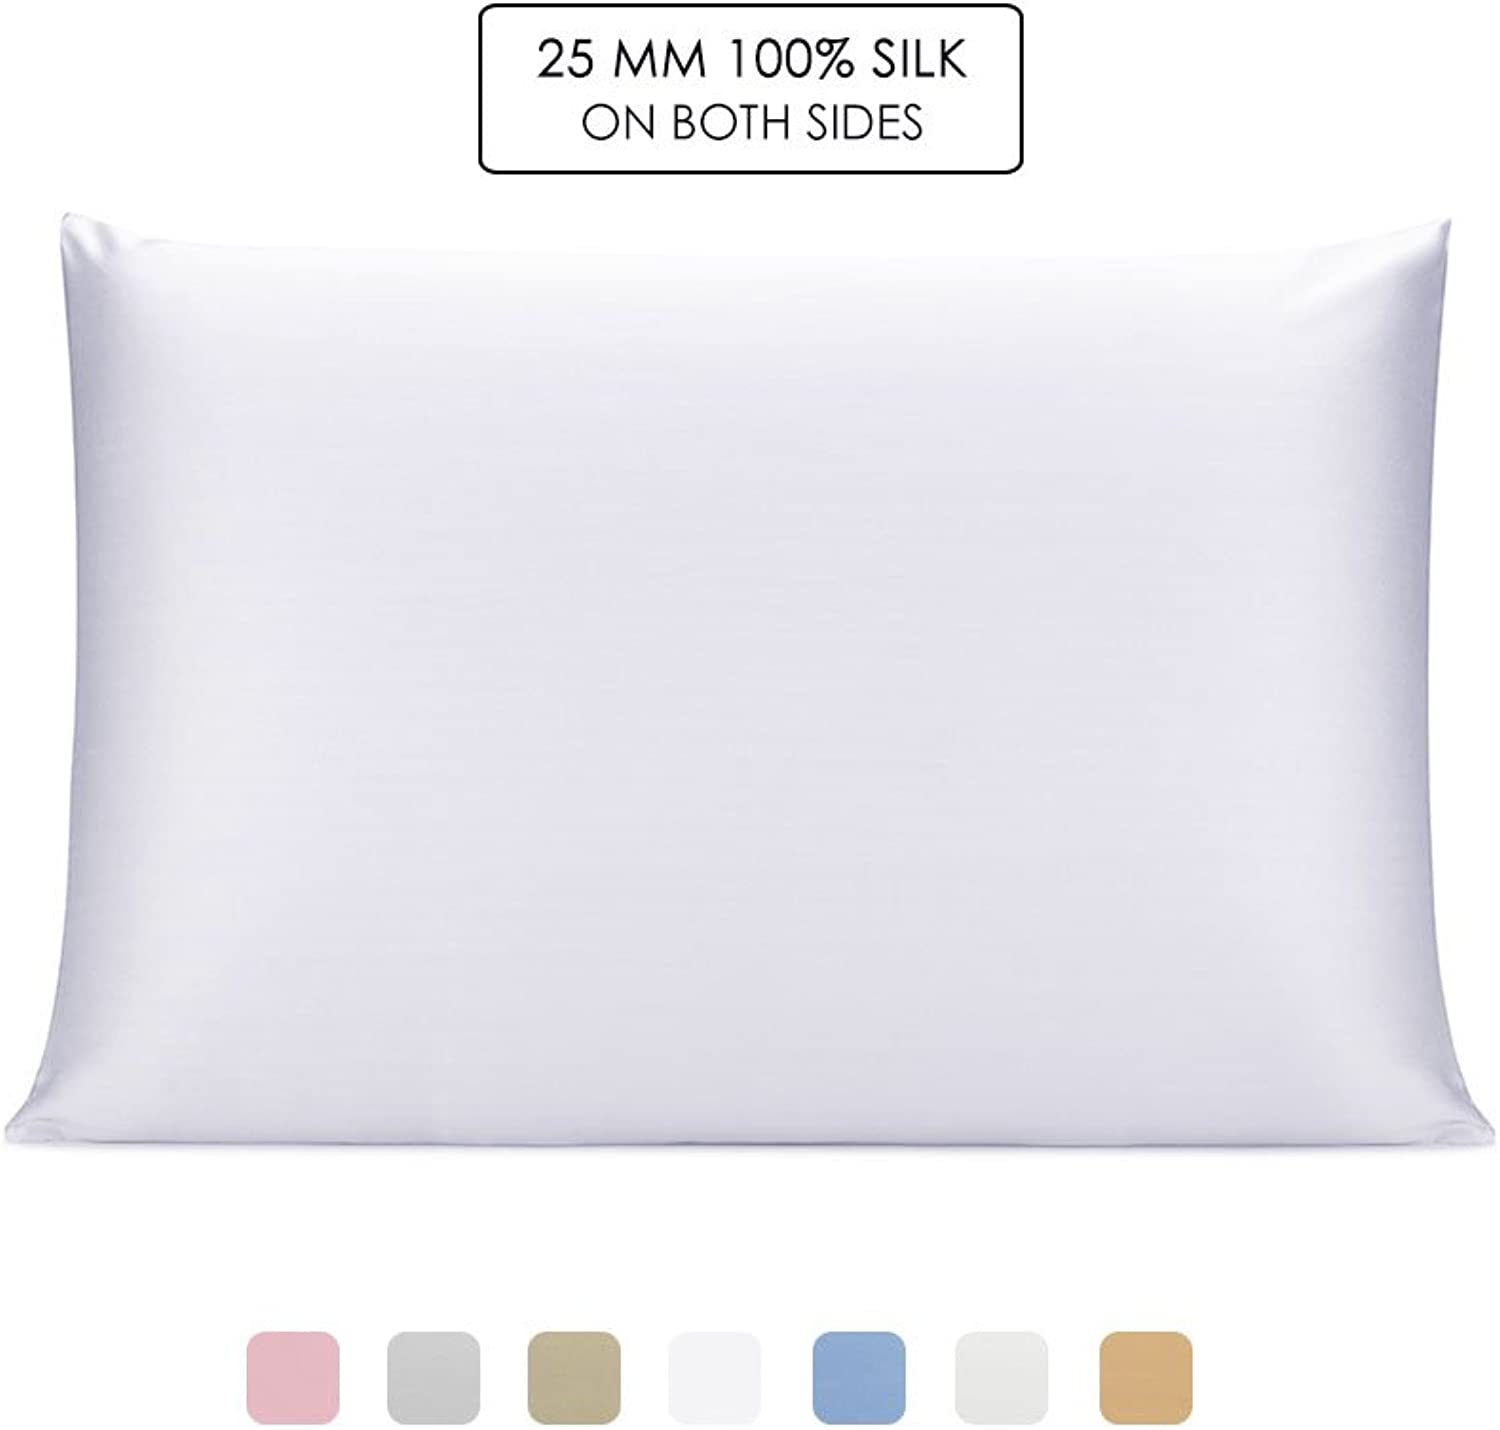 OLESILK 100% Mulbery Silk Pillowcase with Hidden Zipper for Hair and Skin Beauty,Both Sides 25mm Charmeuse Gift Box - White, Toddler